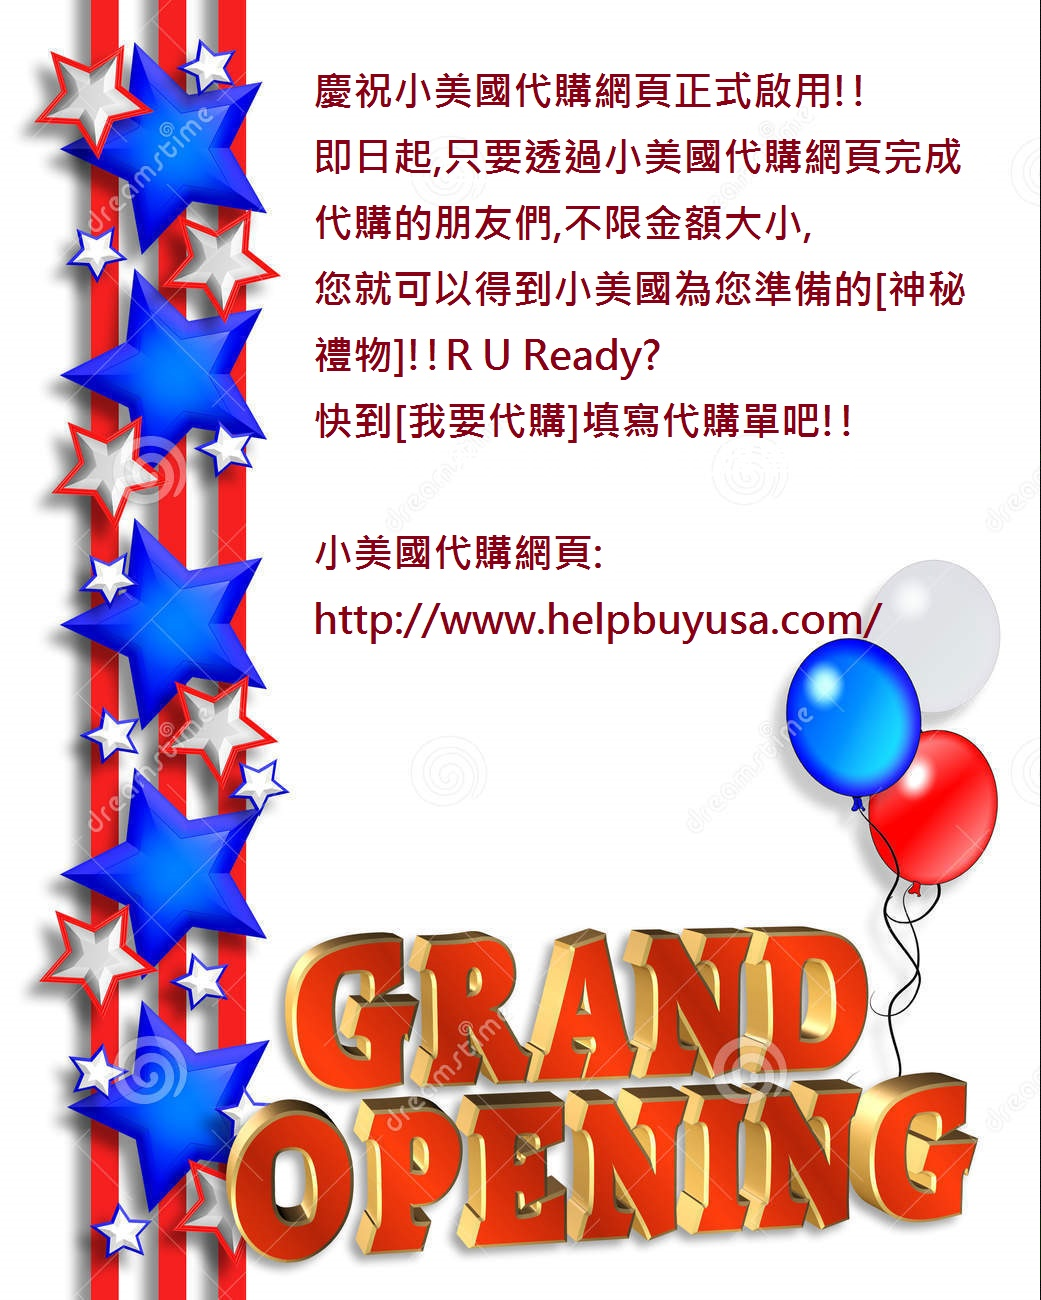 http://www.dreamstime.com/royalty-free-stock-photo-grand-opening-announcement-template-image6380285